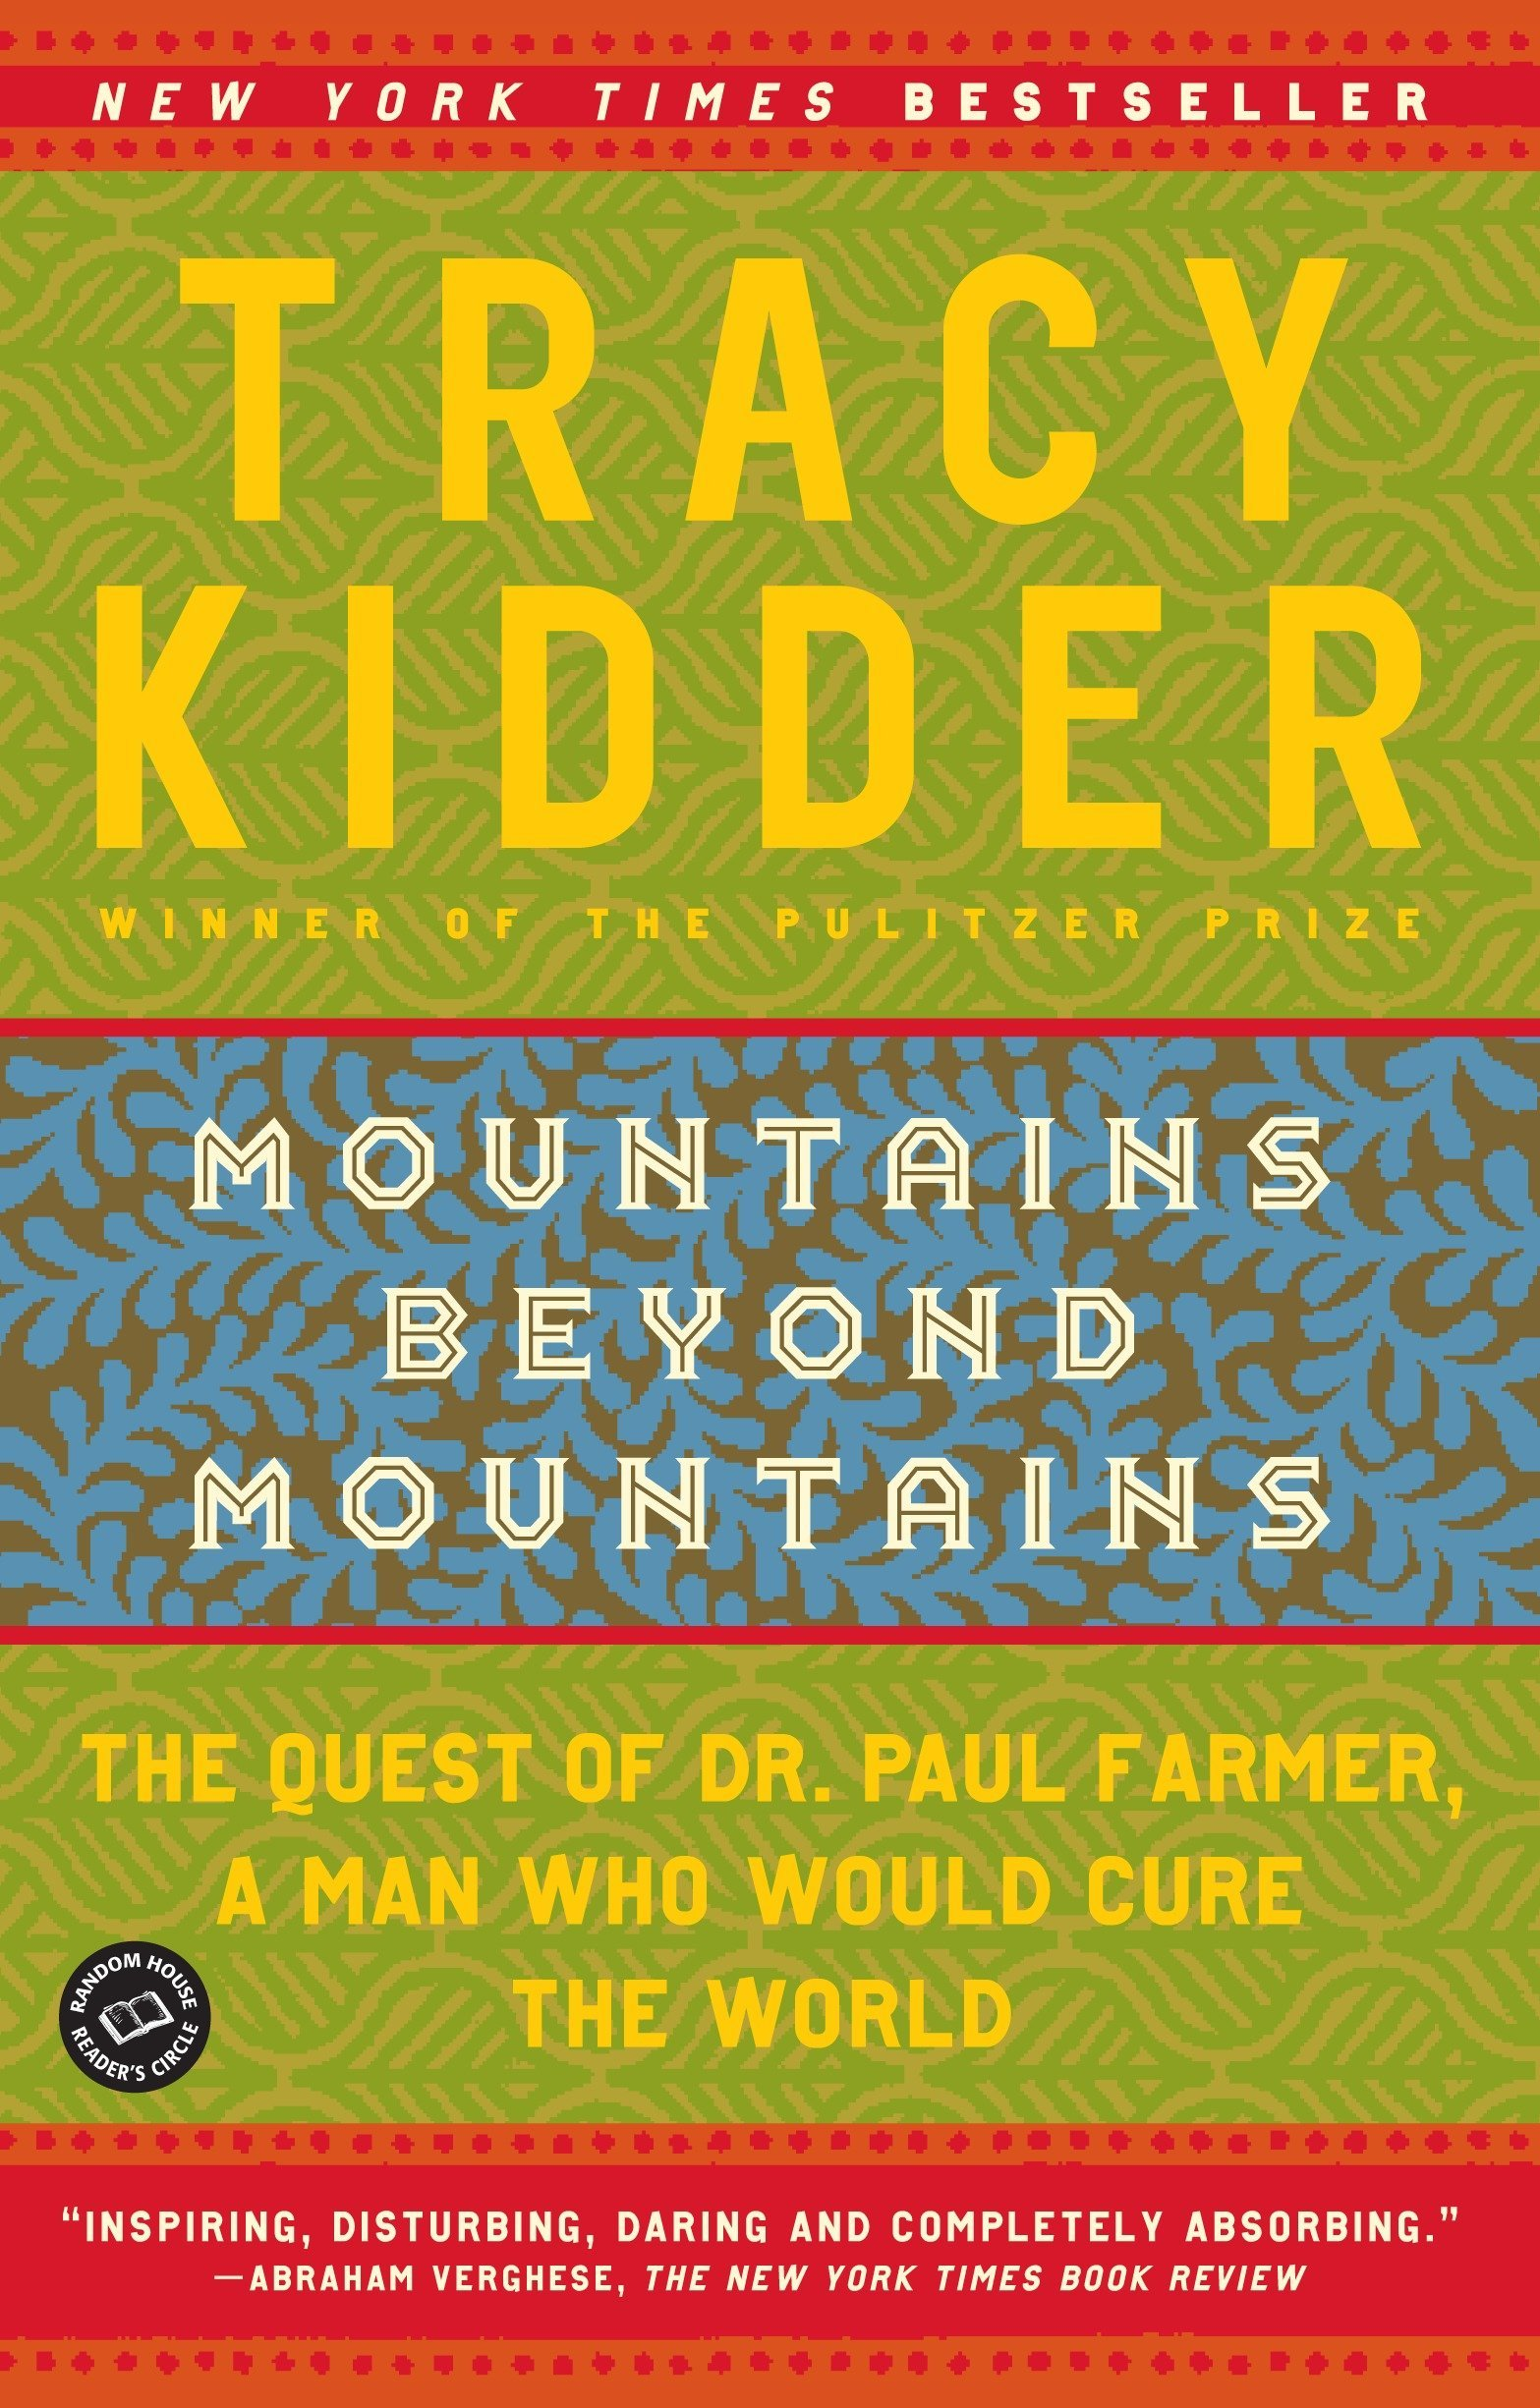 Image result for mountains beyond mountains by tracy kidder